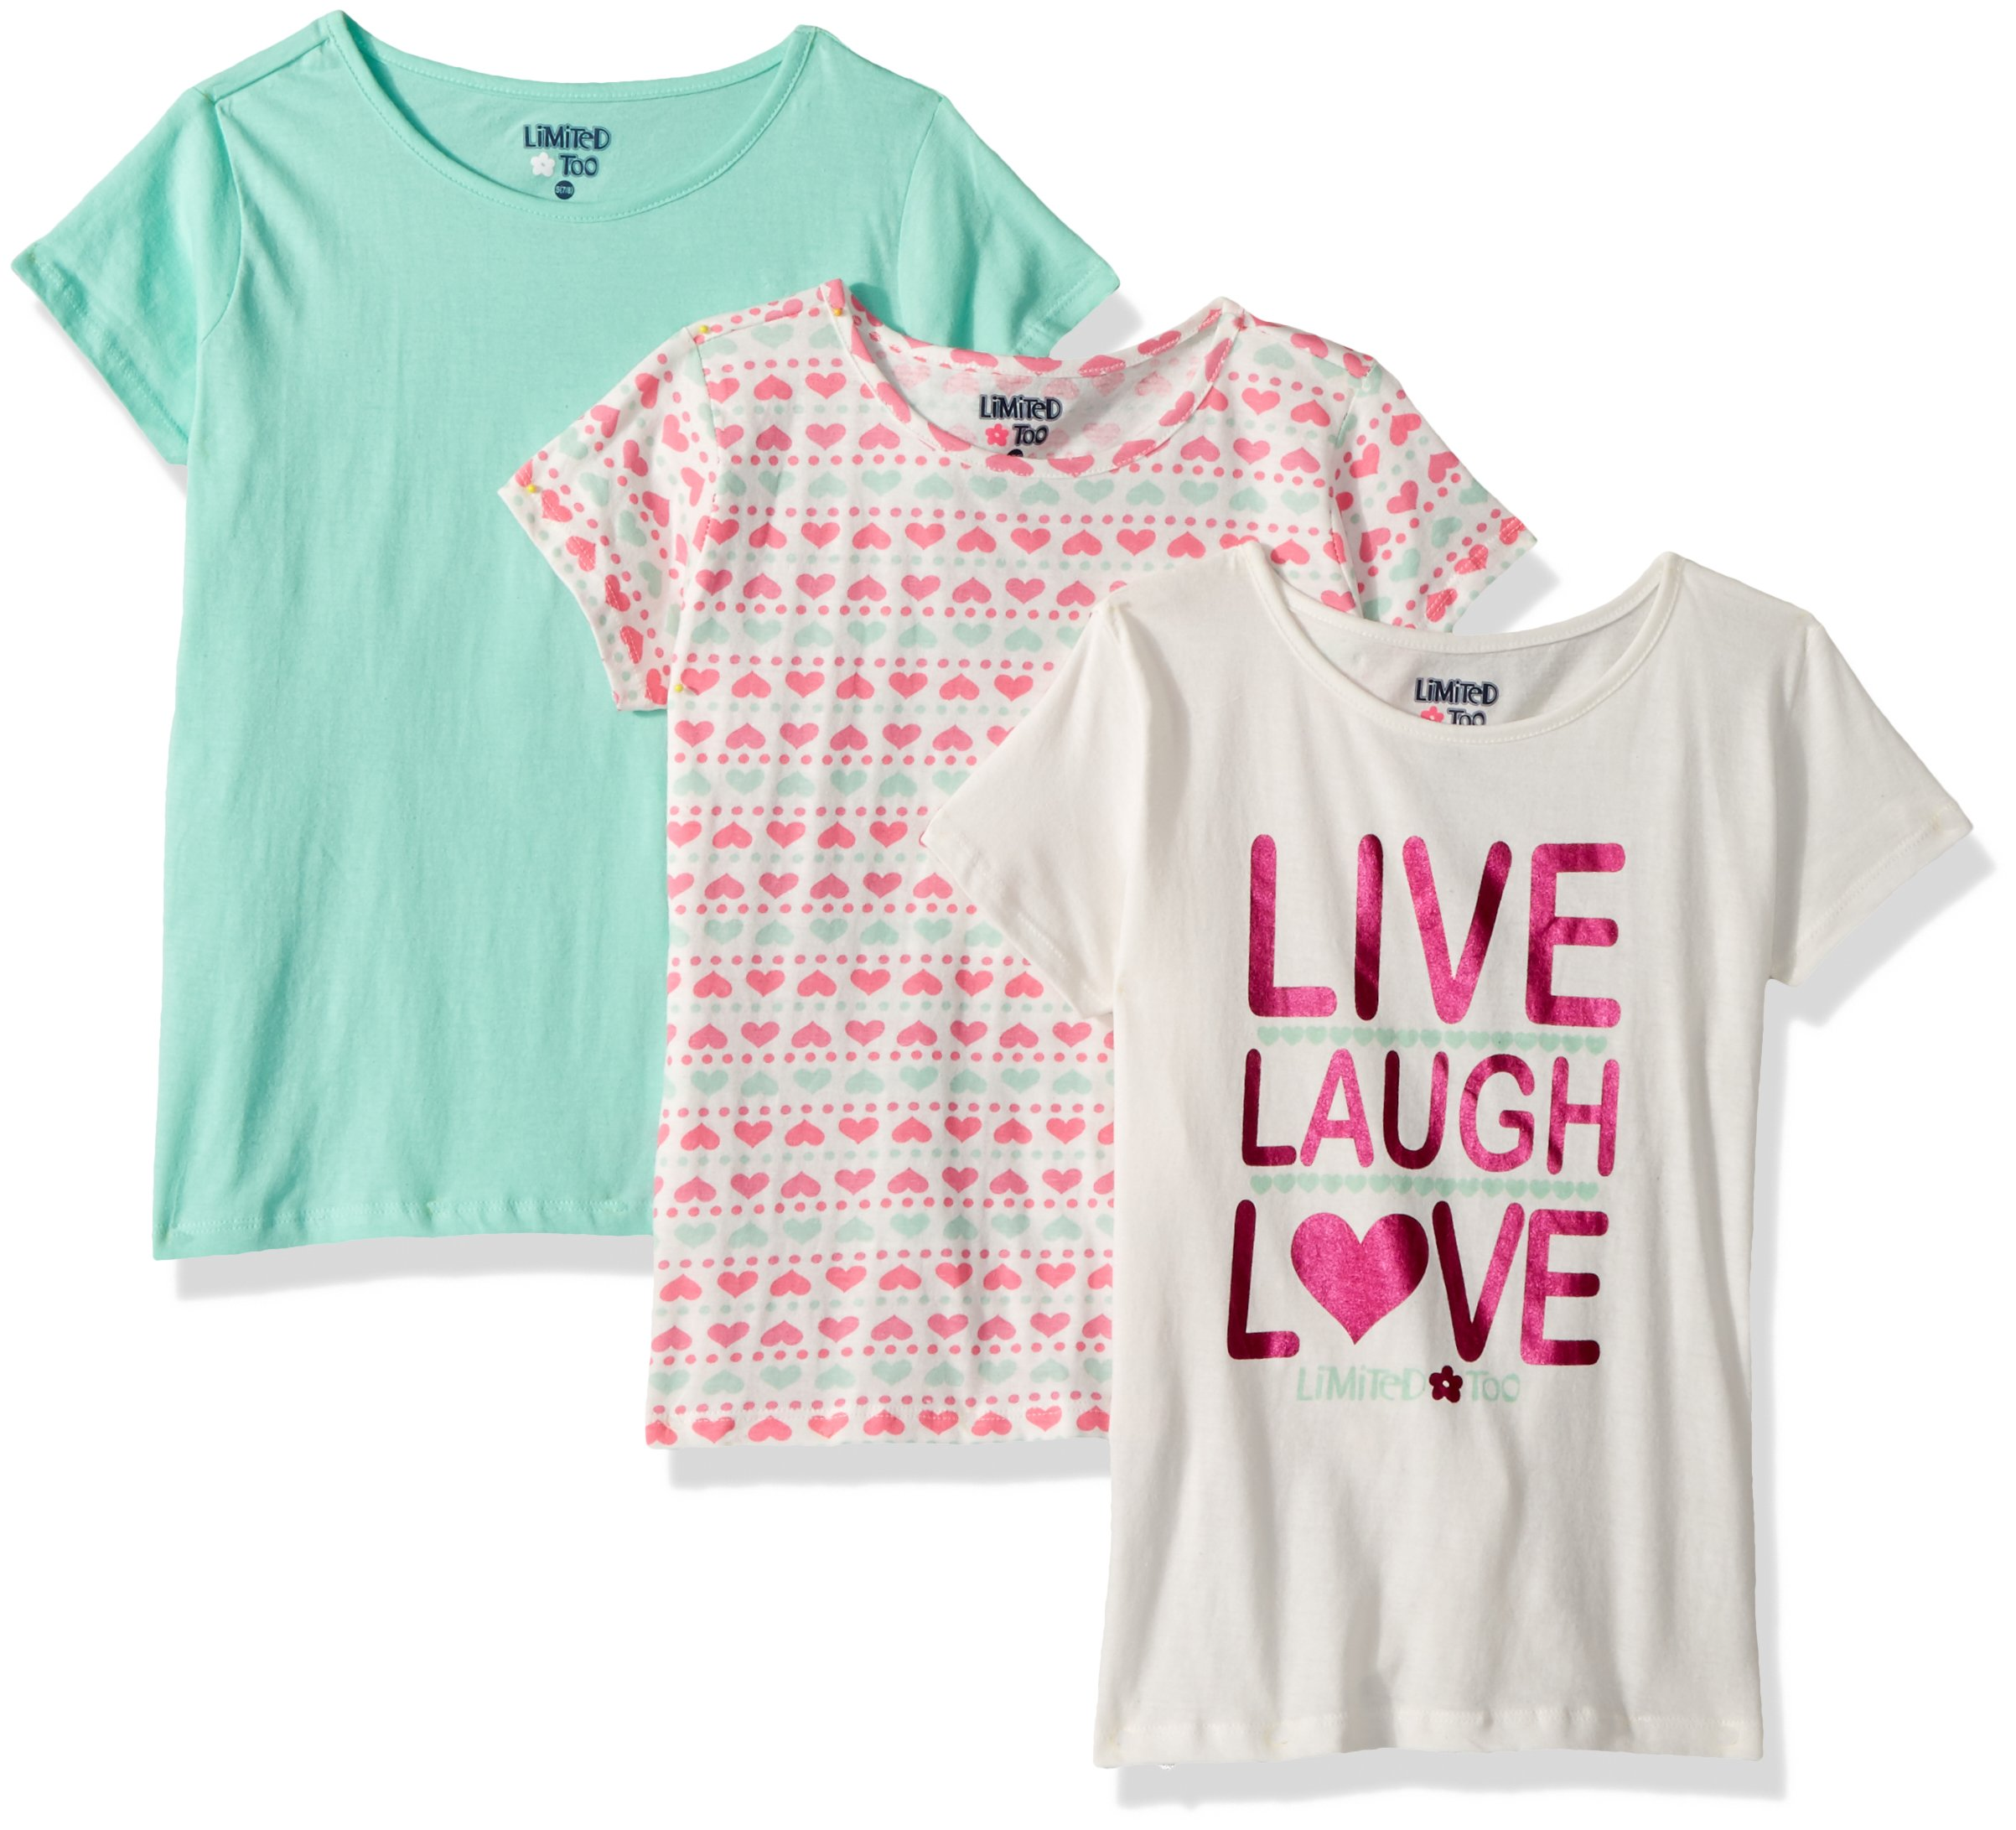 Limited Too Big Girls' 3 Pack T-Shirt, Print Live Laugh Love Hearts Solid Multi Print, 7/8